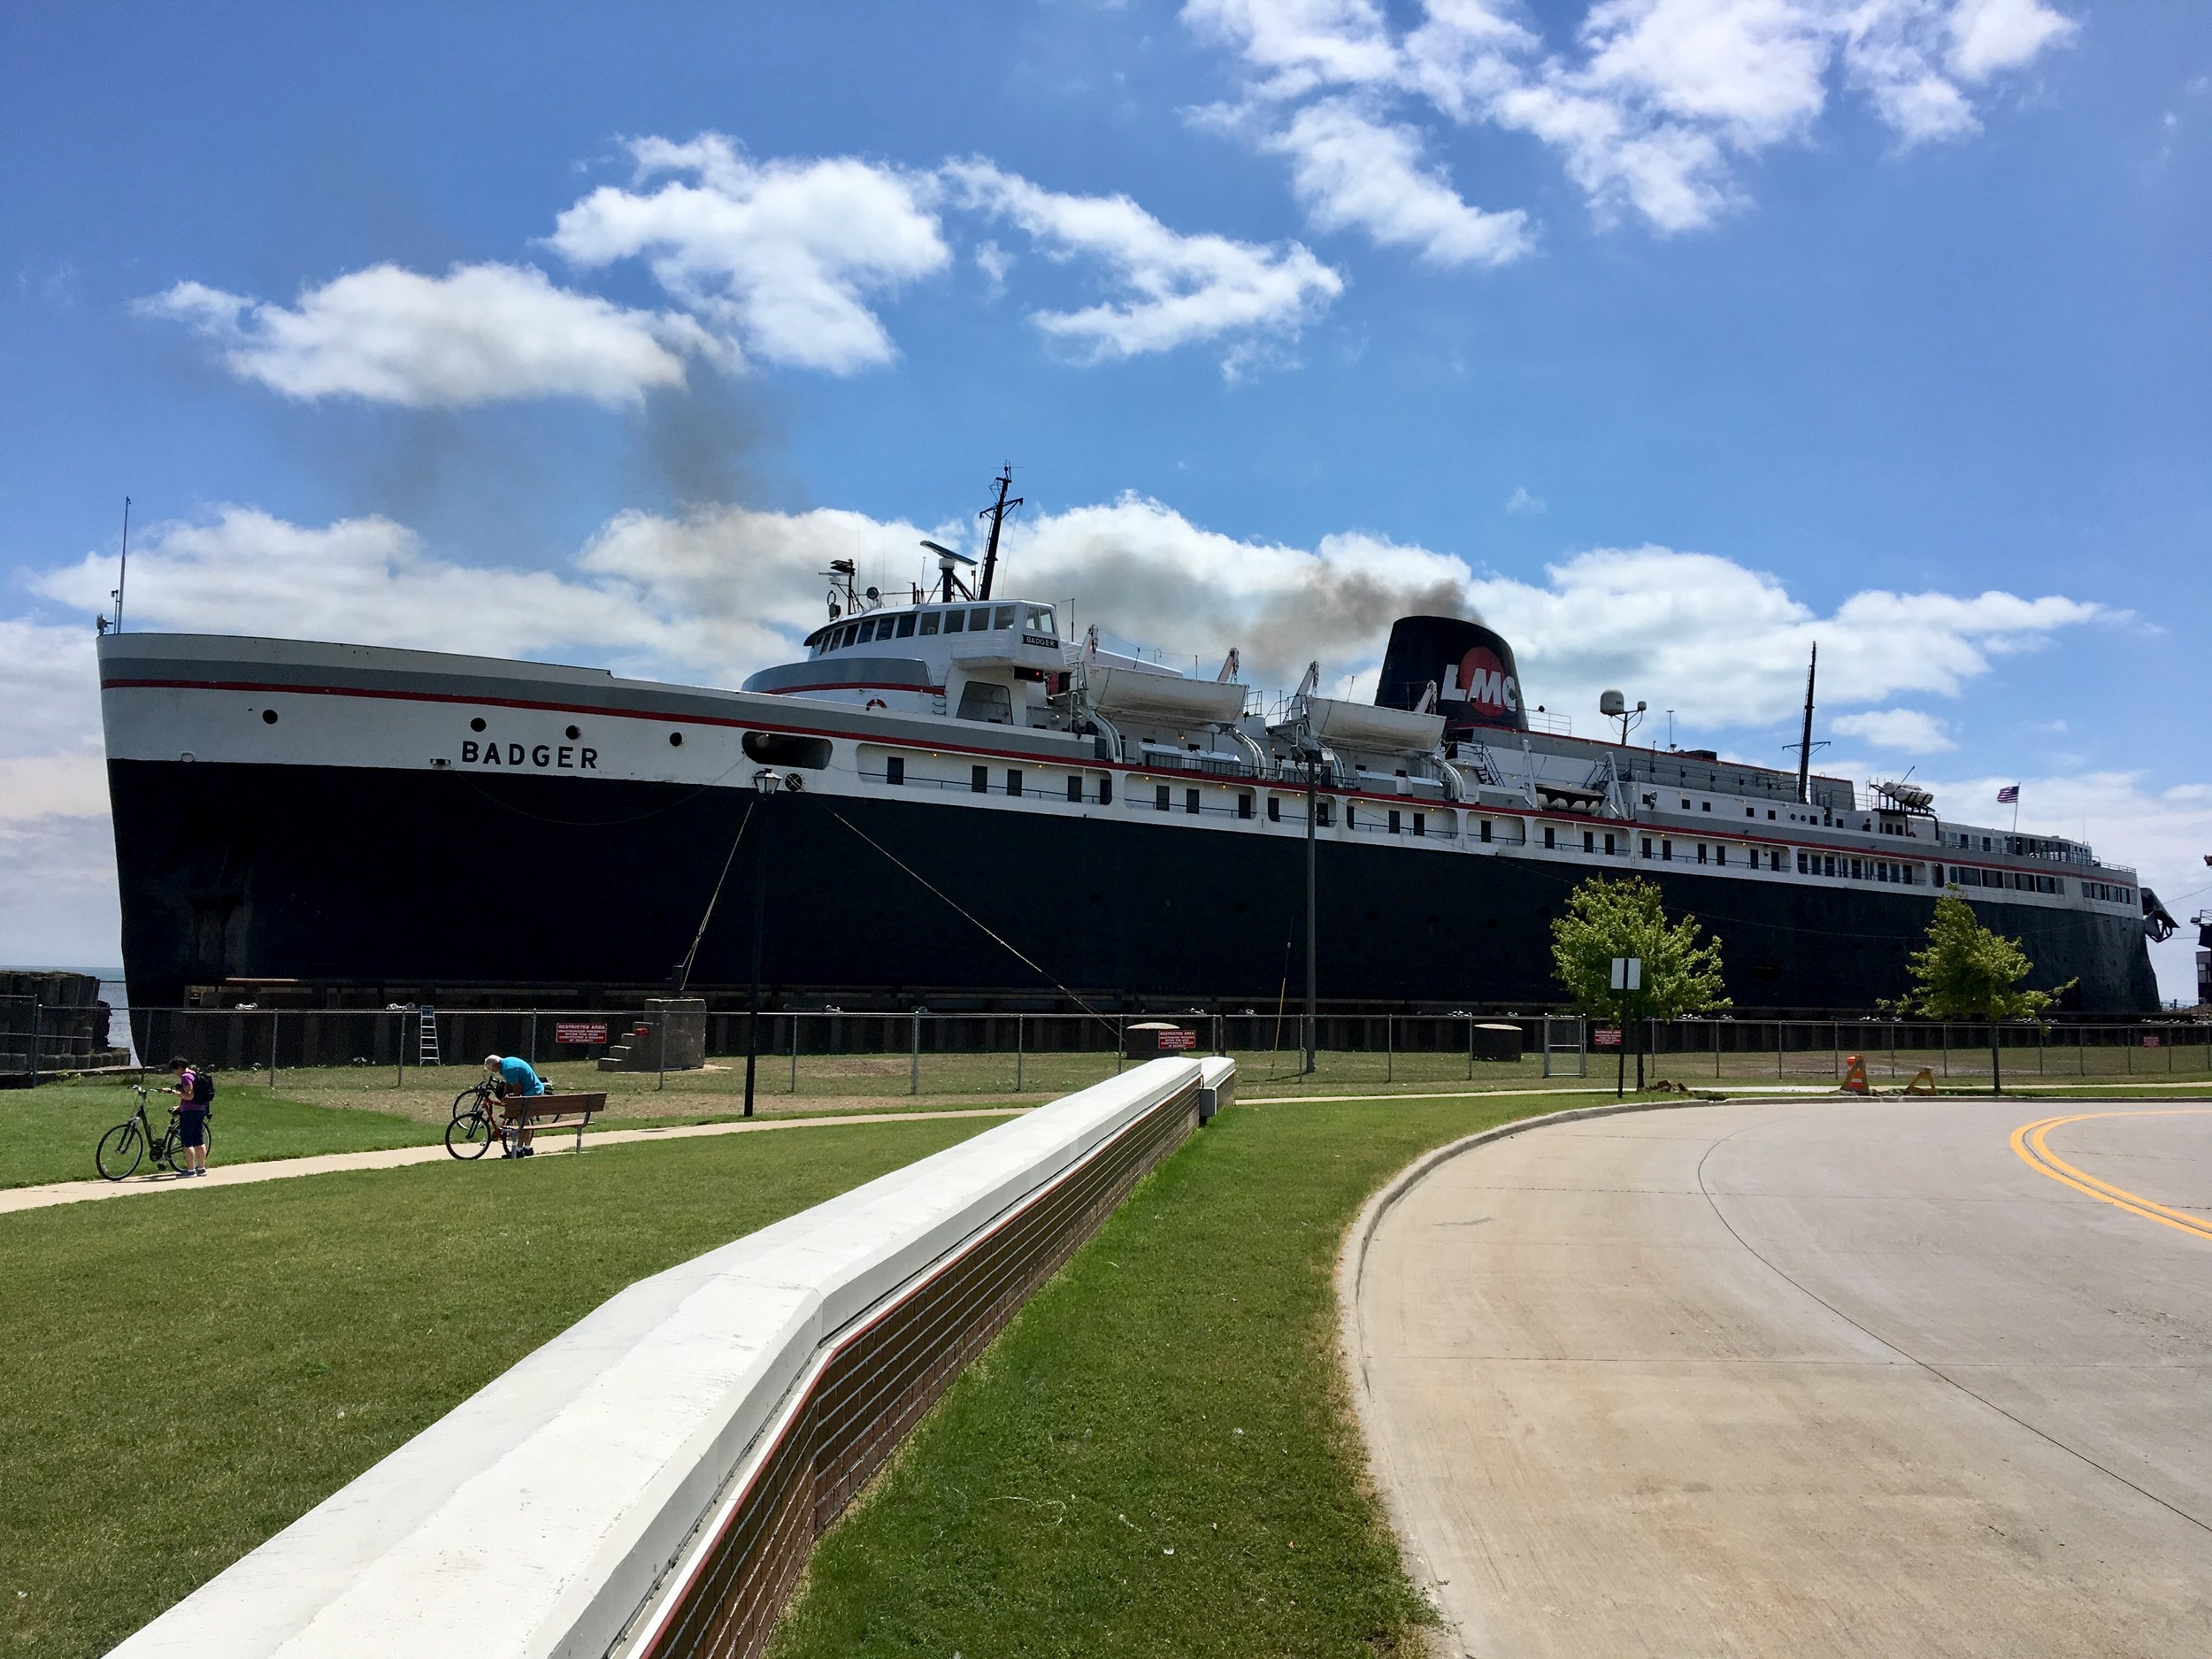 - The SS Badger is a huge coal-powered ferry that carried us and many others across the lake to Michigan.